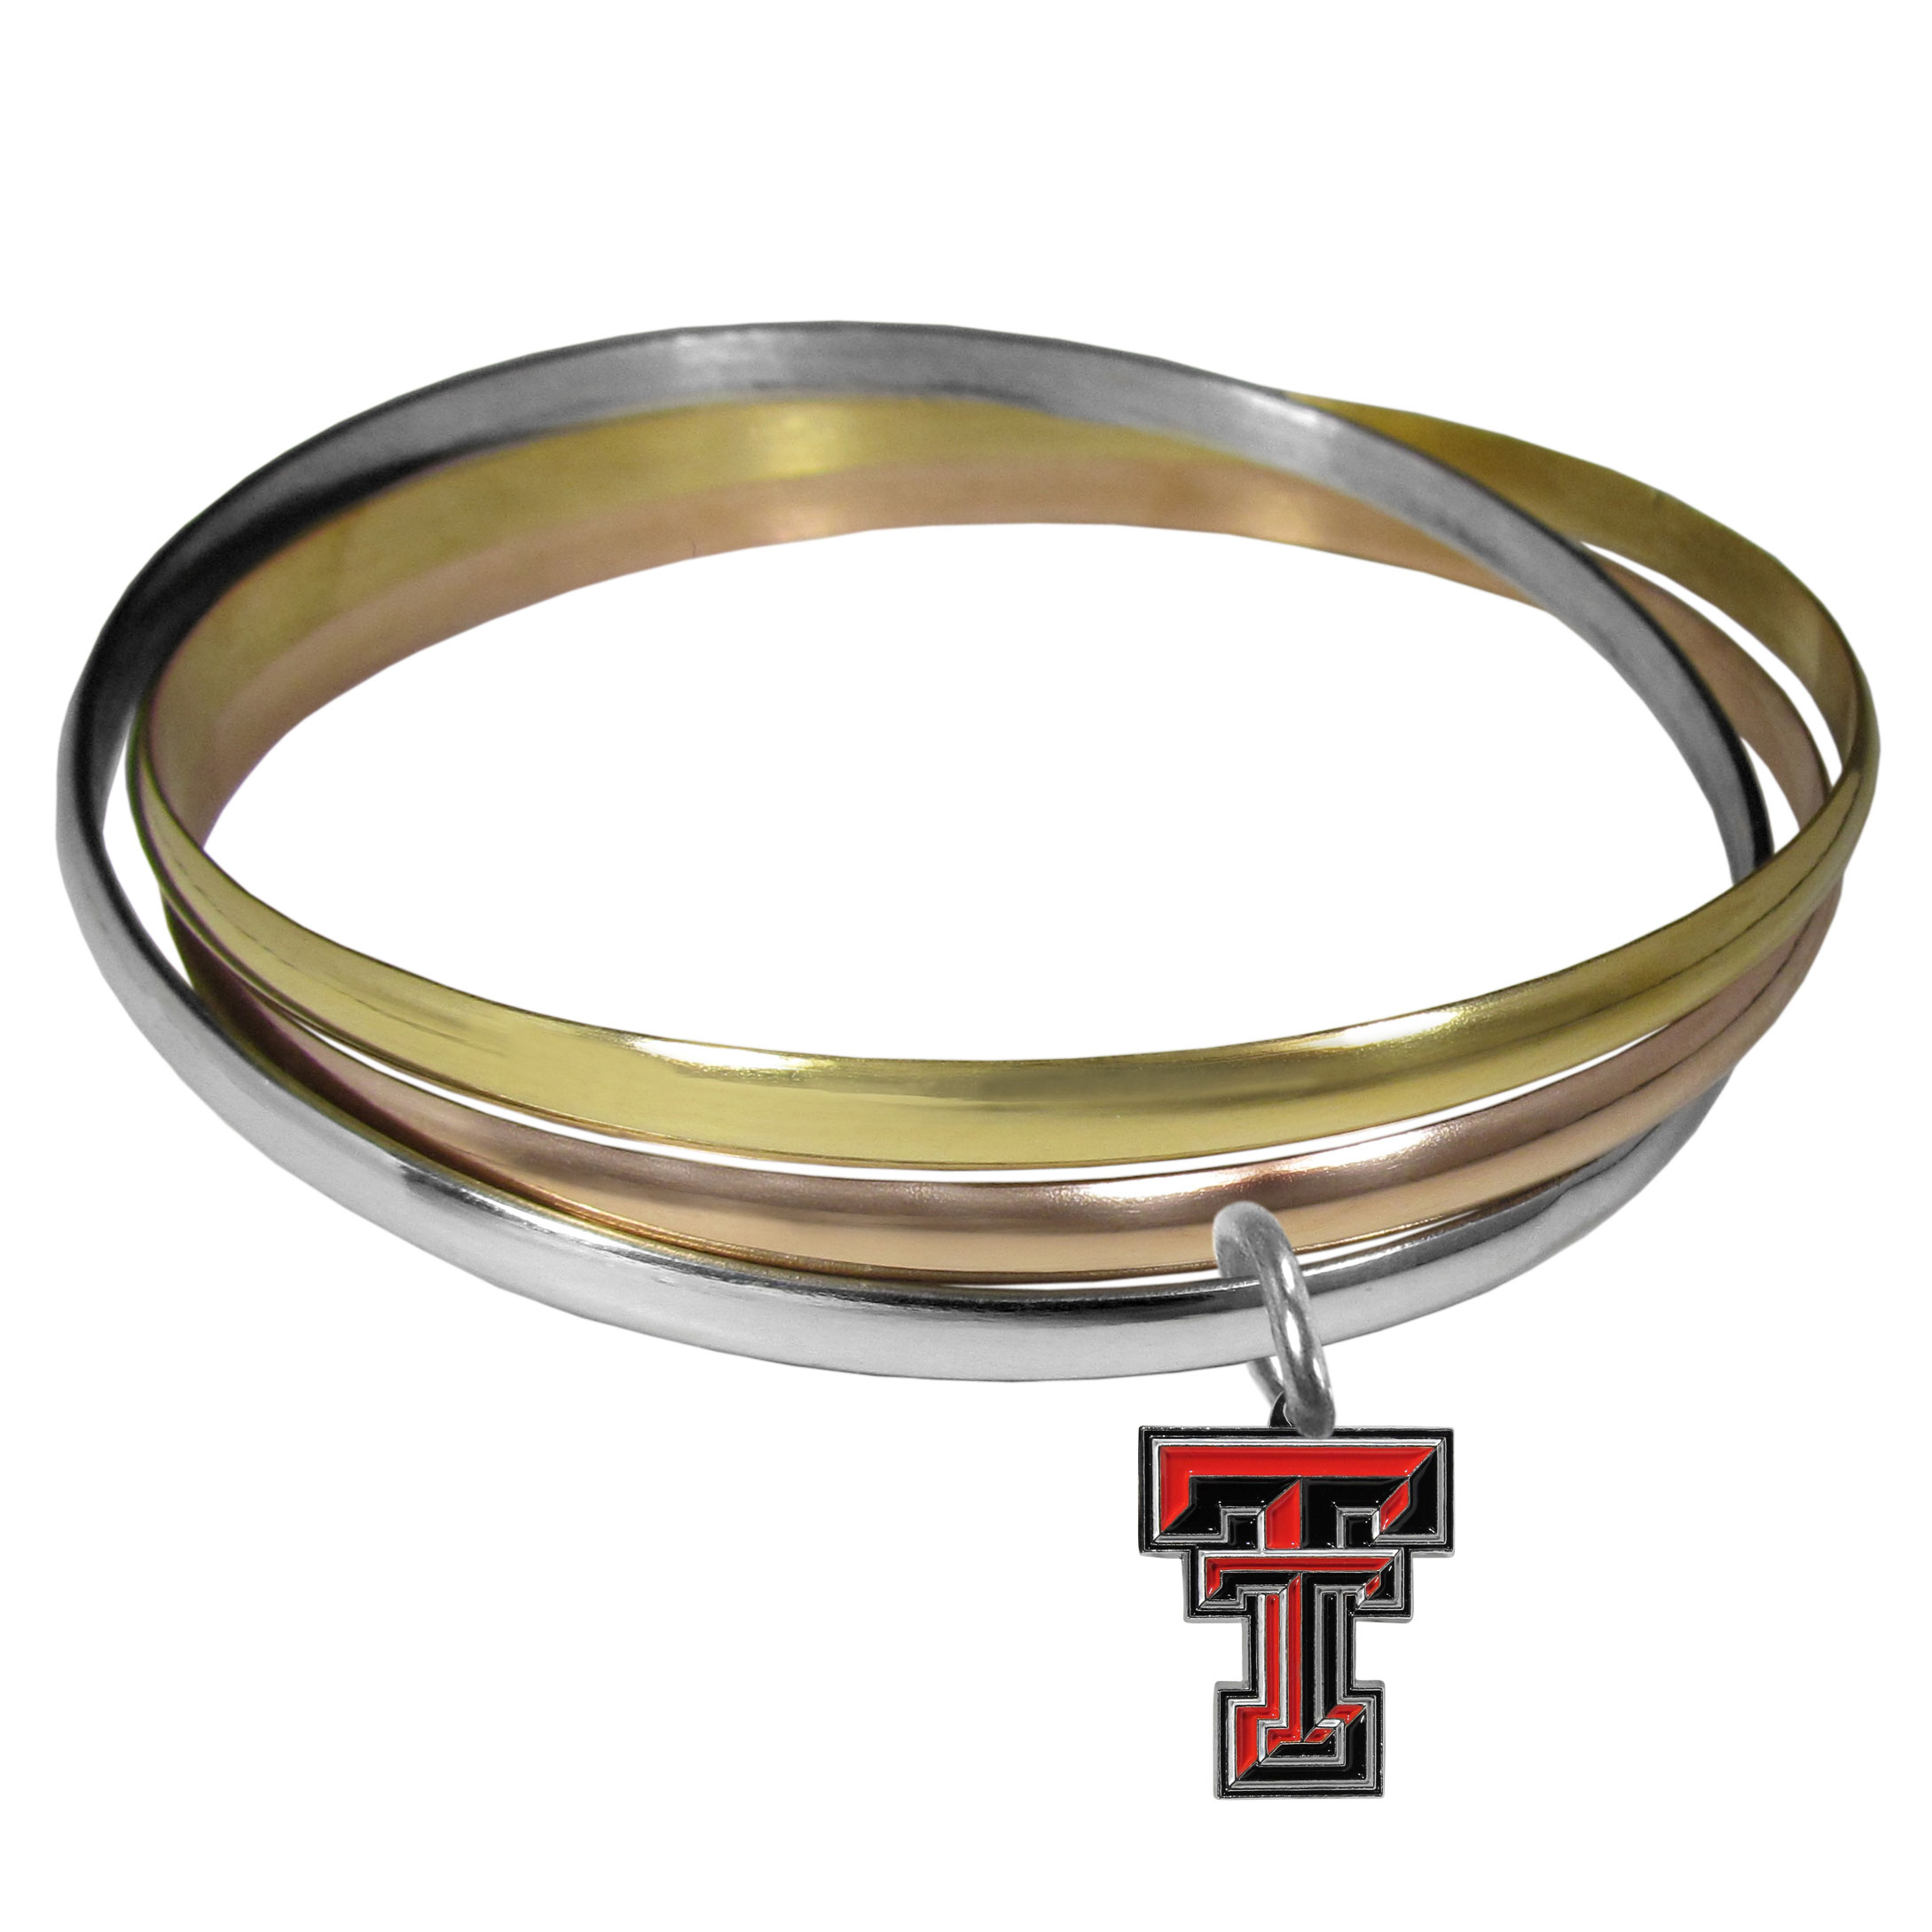 Texas Tech Raiders Tri-color Bangle Bracelet - These beautiful bangles come in a interlocking style and feature a fully cast Texas Tech Raiders charm with enameled team colors. The bracelet has a silver toned bangle, gold tone bangle and brass toned bangle.